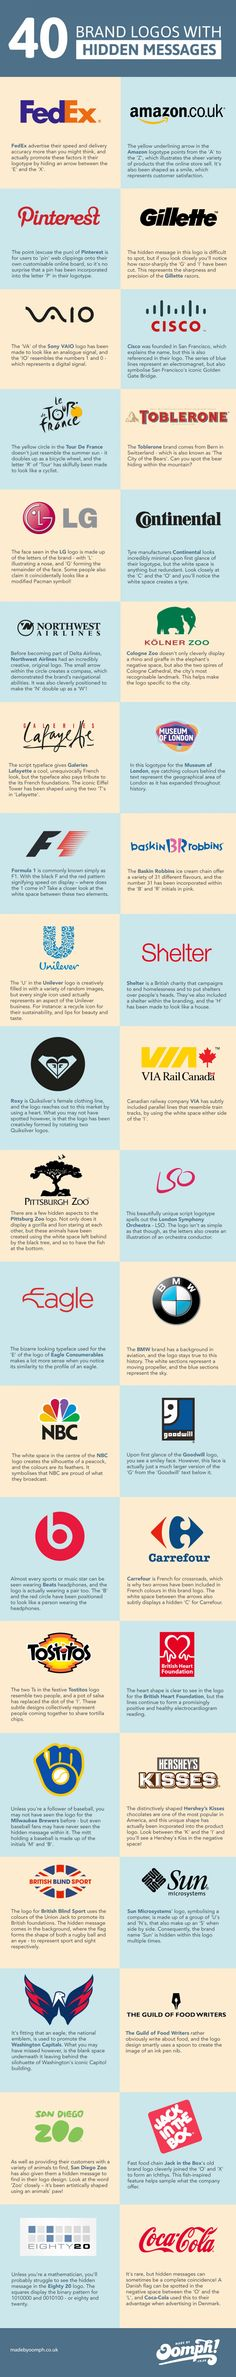 40 Brand #Logos with Hidden Messages